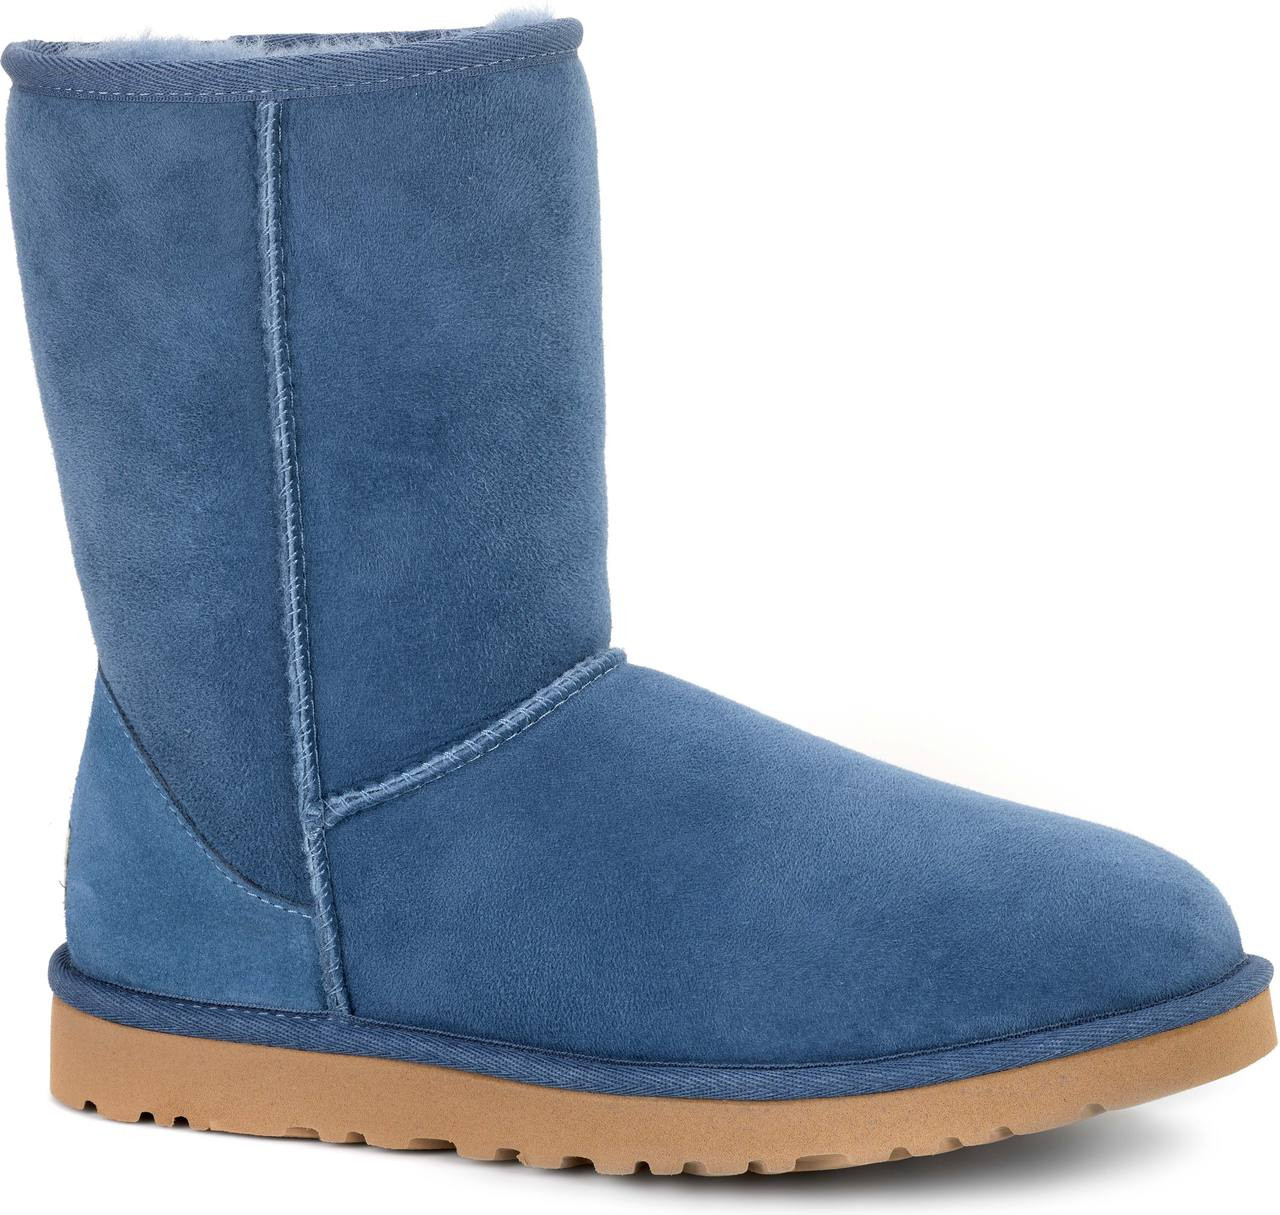 uggs classic tall boots for women nz